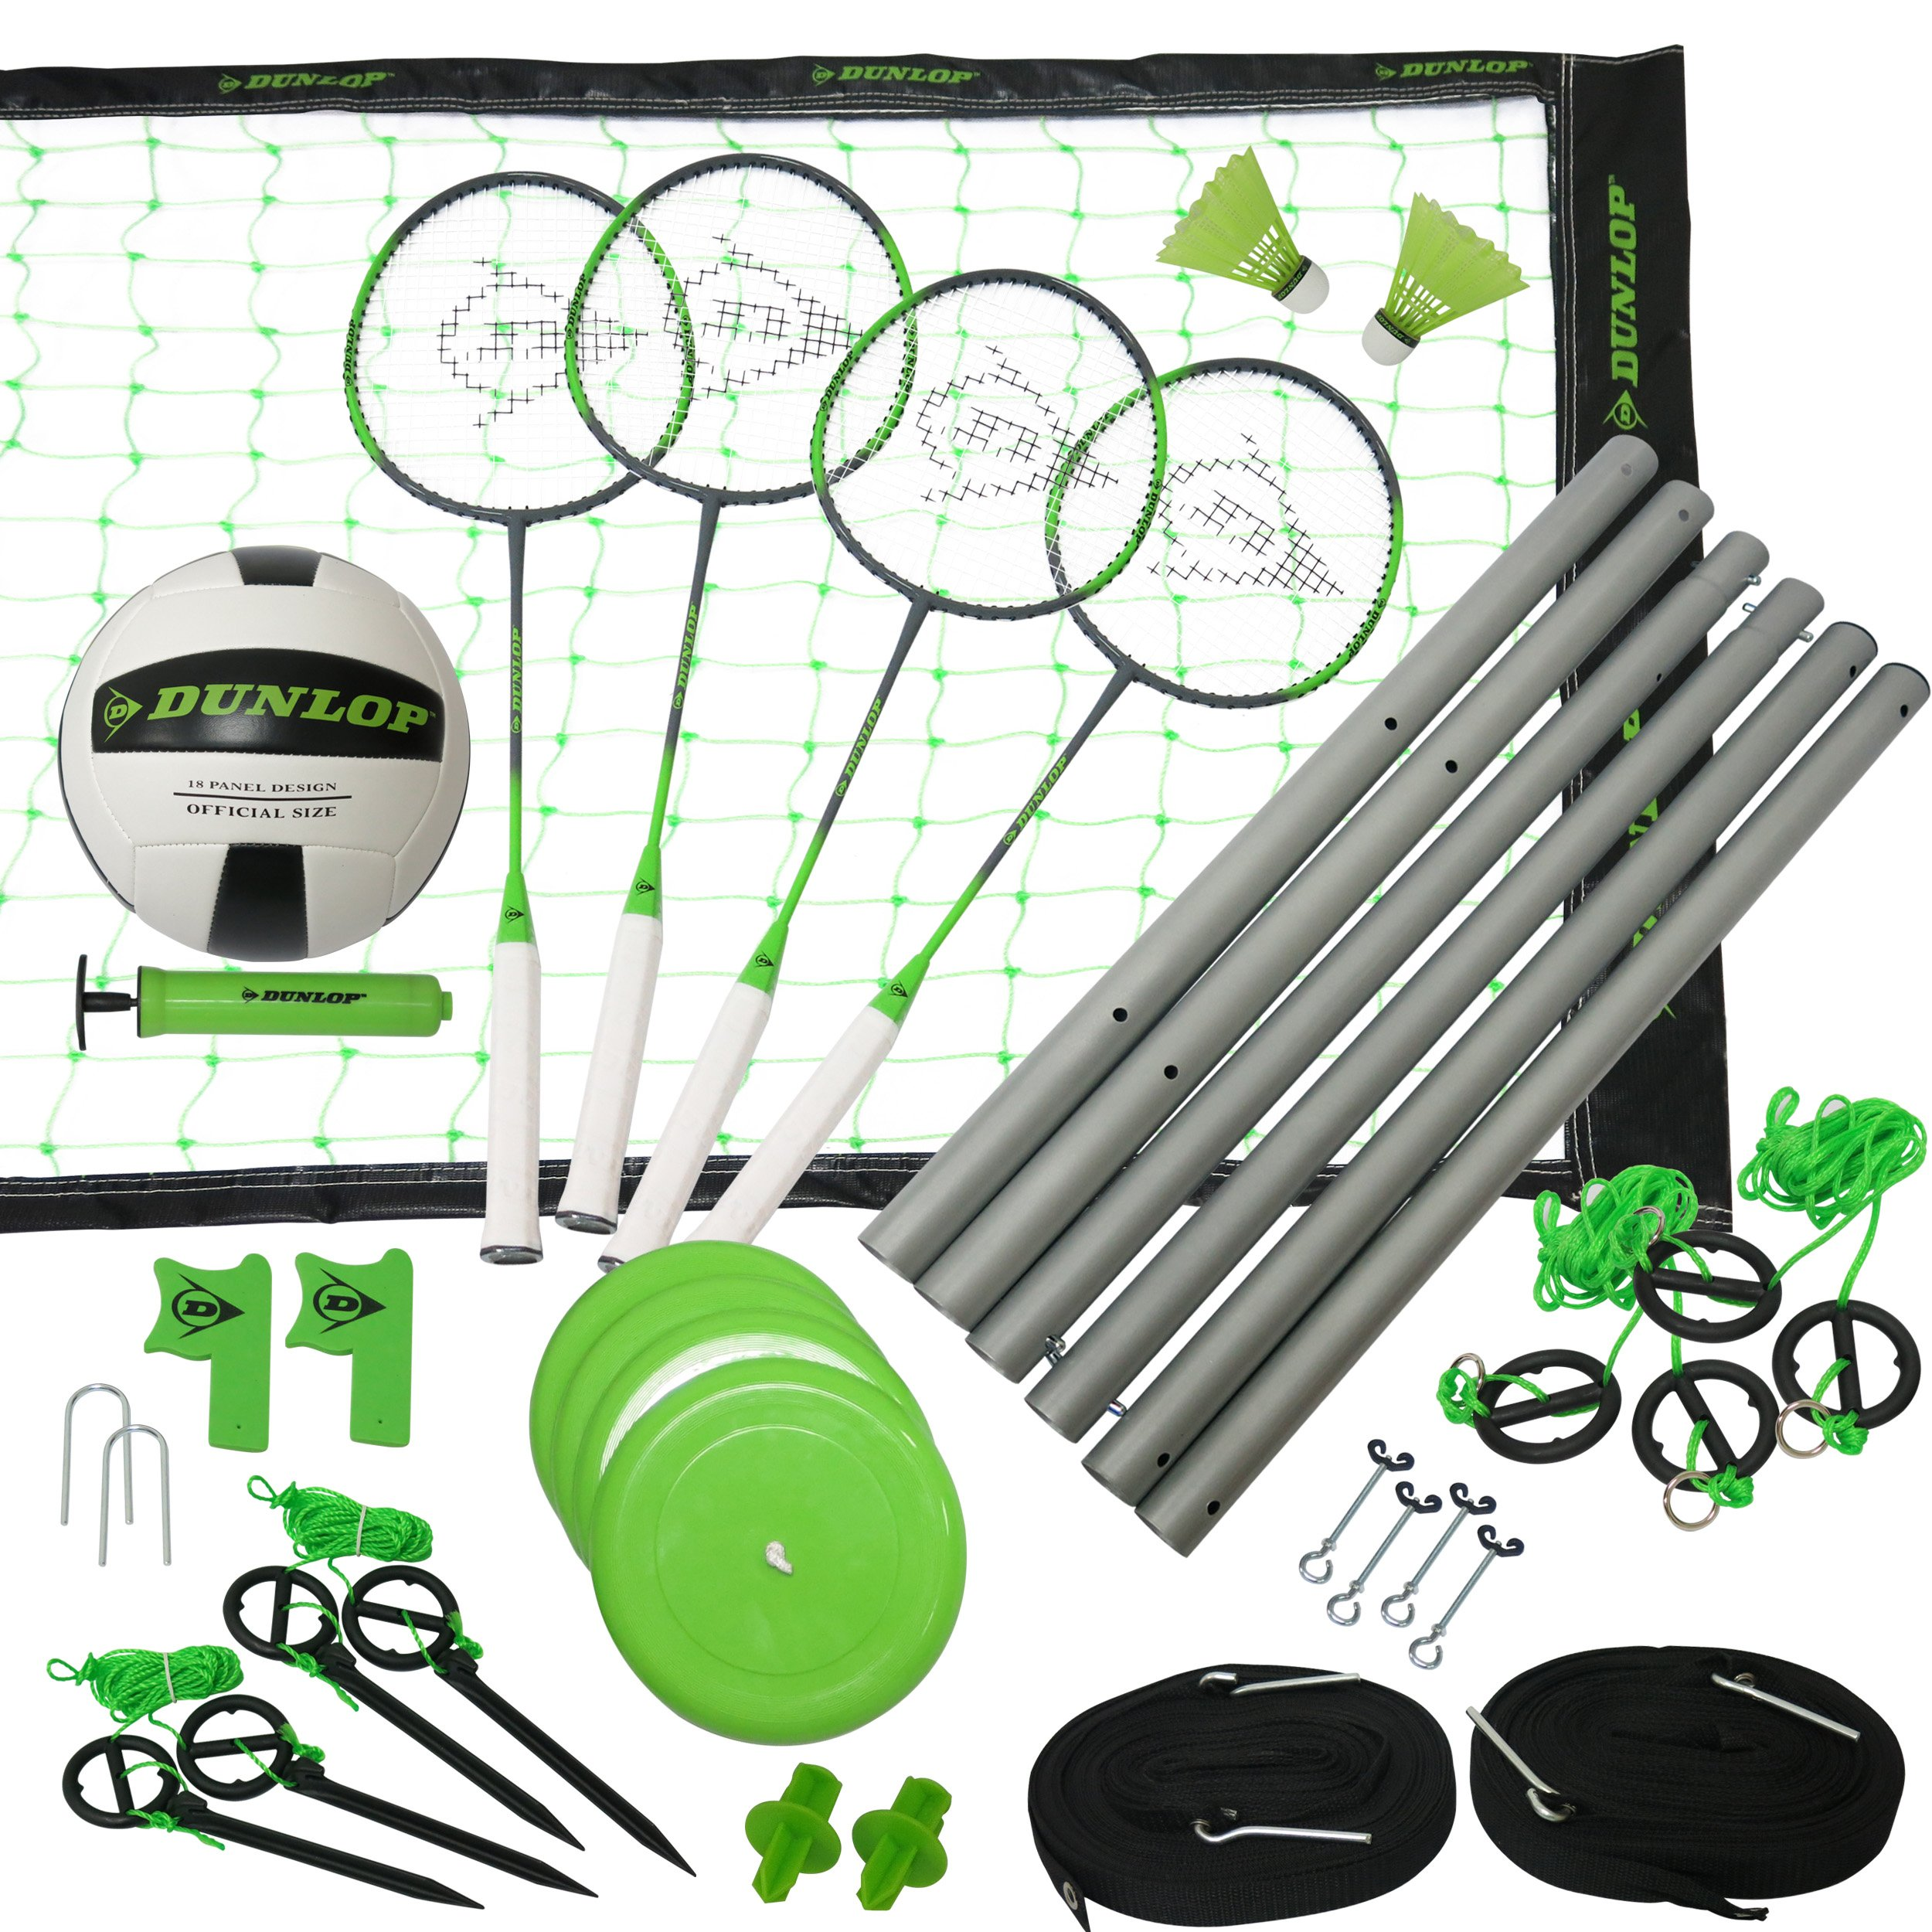 Dunlop Professional Volleyball Badminton Games: Classic Outdoor Lawn Game Set with Carry Bag